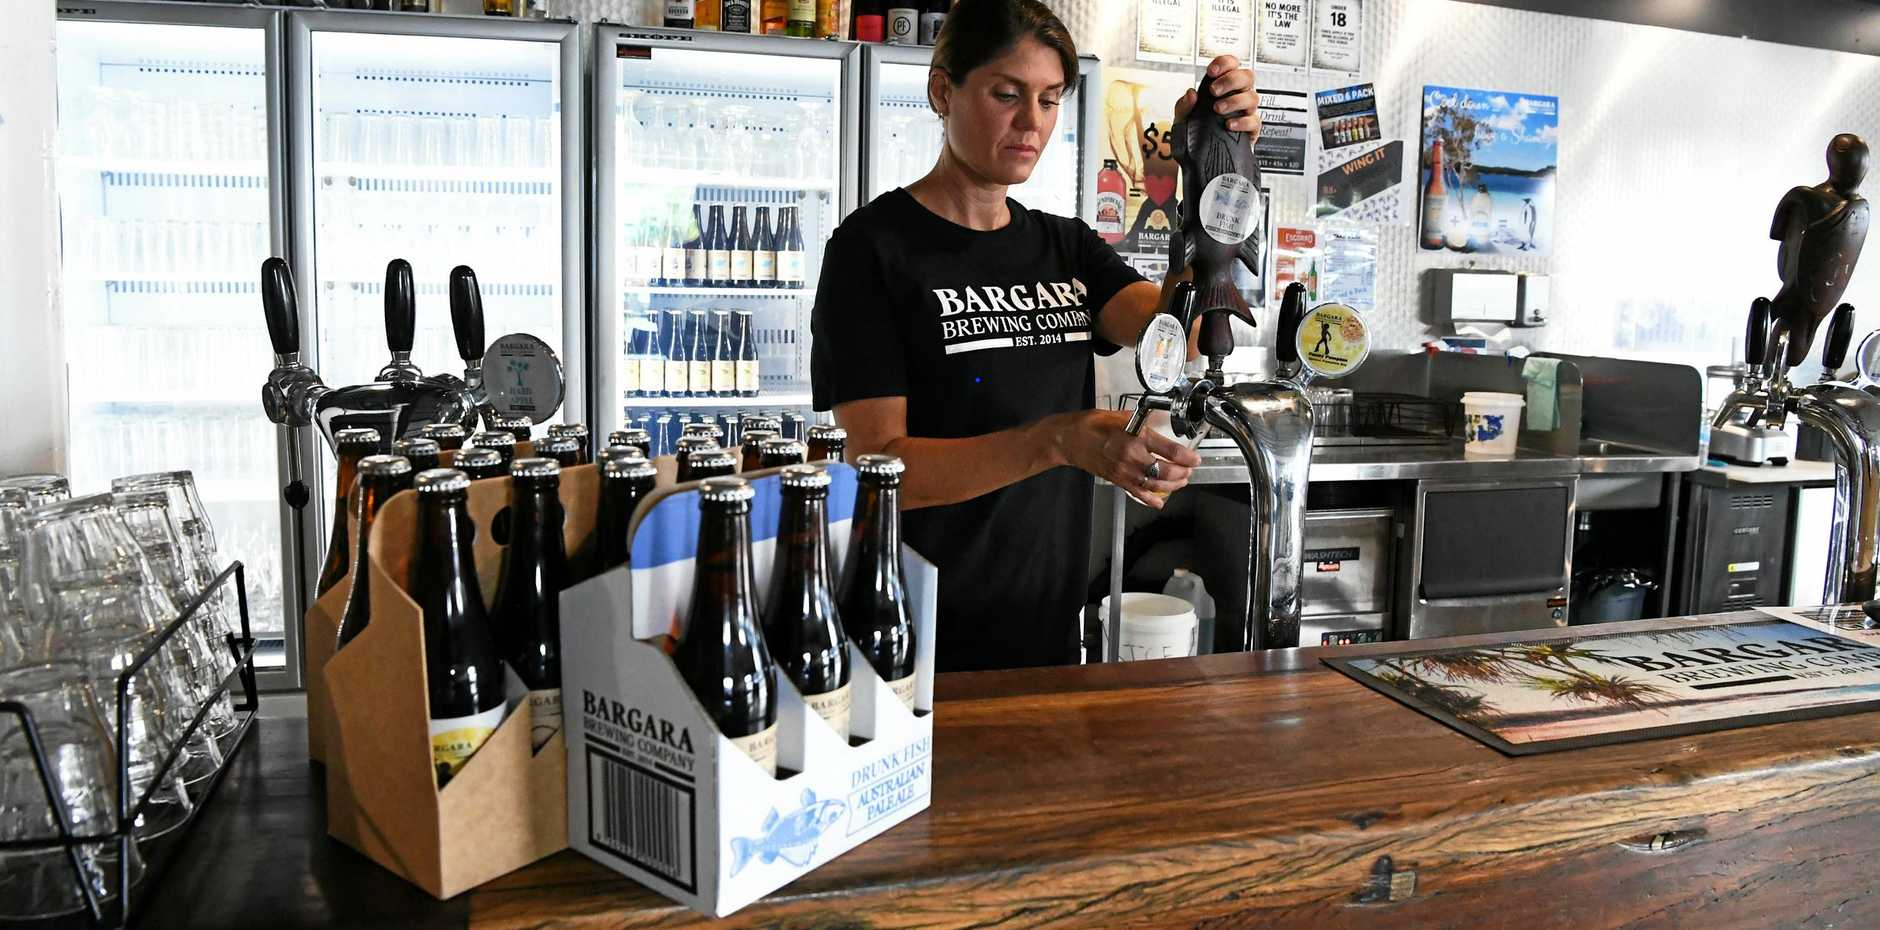 BREWING INDUSTRY: High taxes are crippling the opportunity to expand the business and create more revenue and job opportunities in Bundaberg.